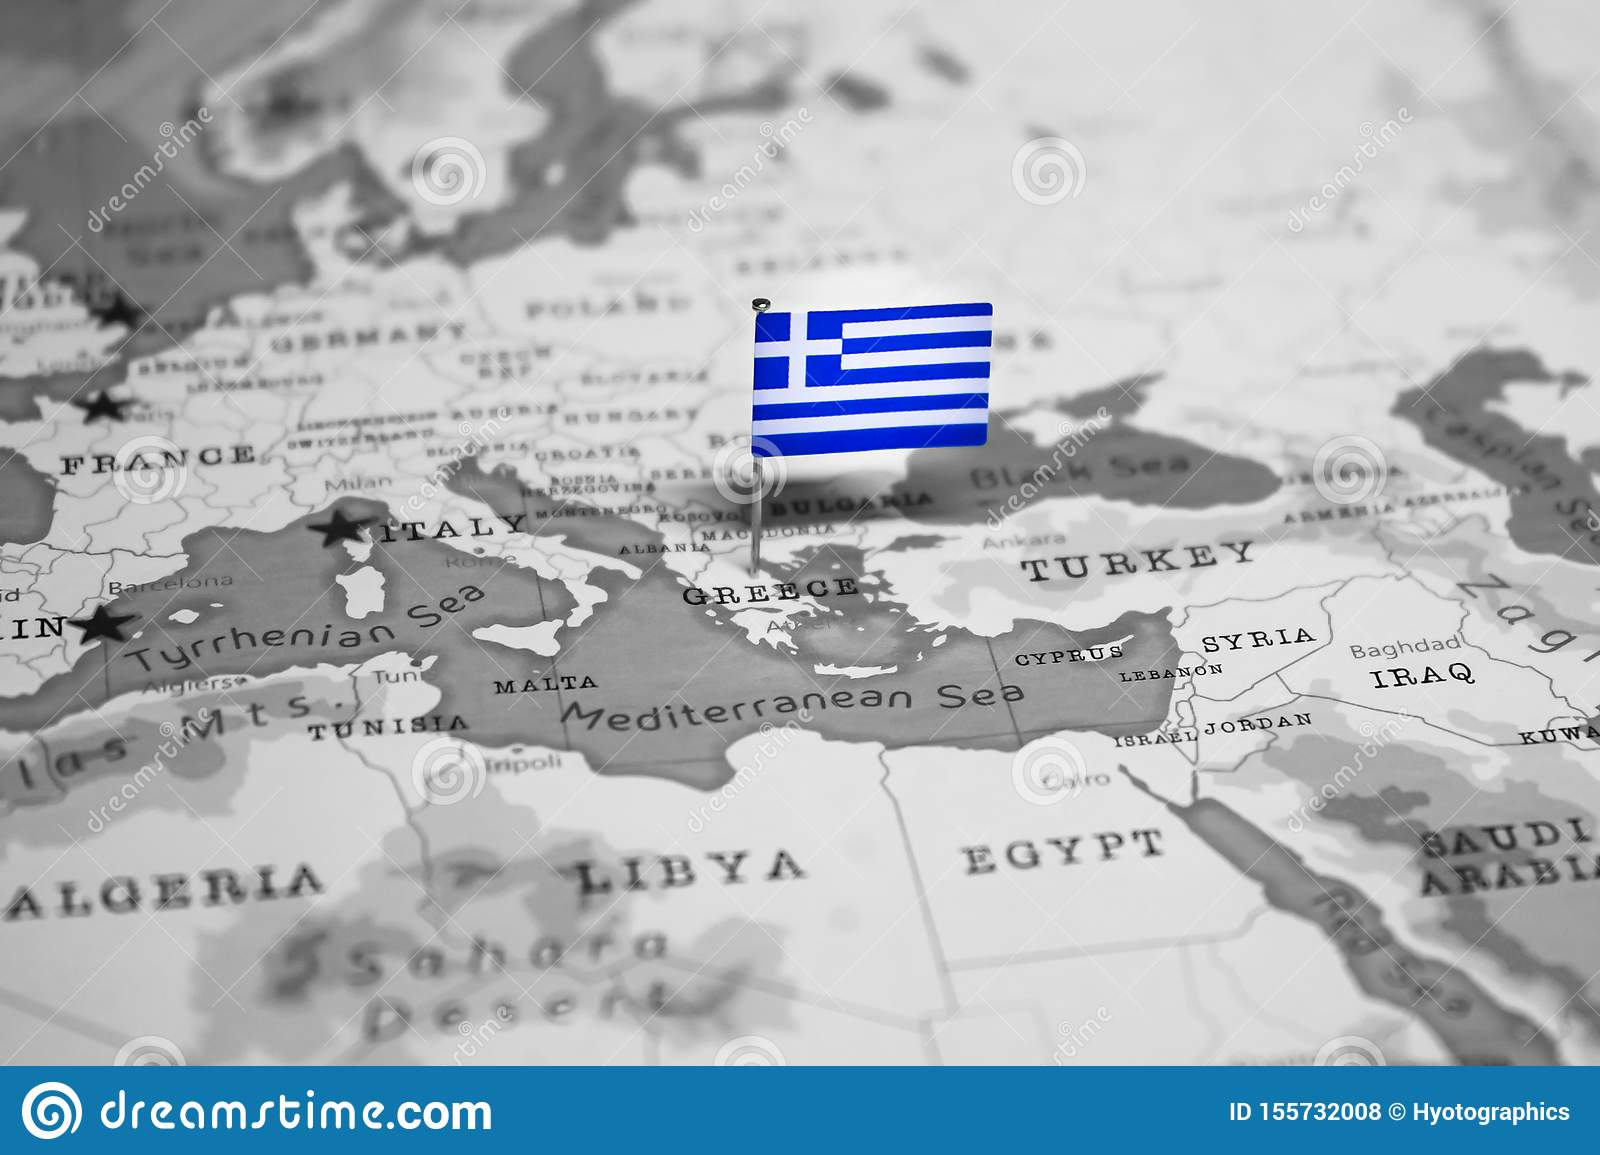 The Flag Of Greece In The World Map Stock Photo - Image of ...